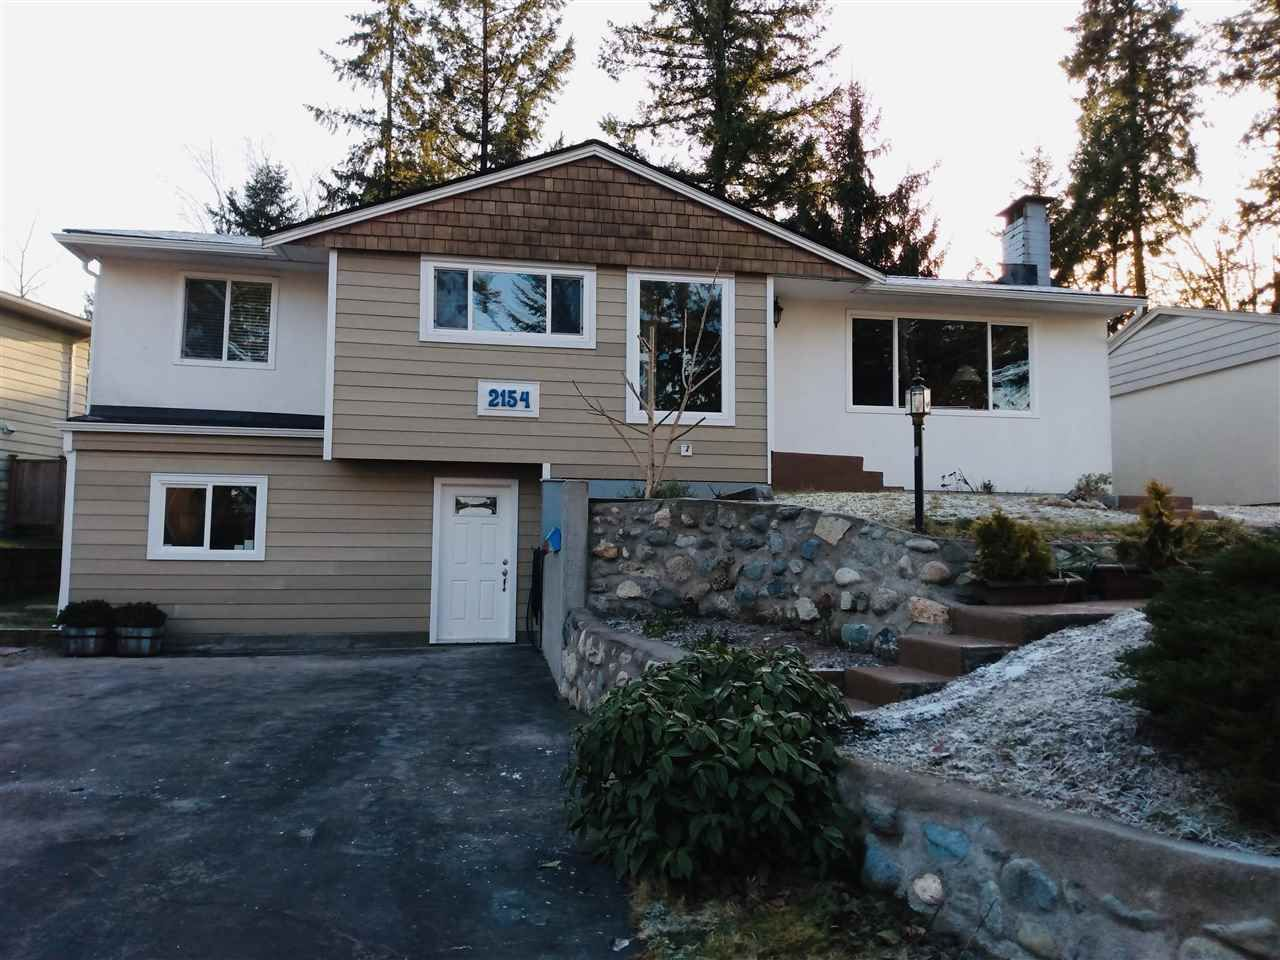 """Main Photo: 2154 AUDREY Drive in Port Coquitlam: Mary Hill House for sale in """"Mary Hill"""" : MLS®# R2533173"""